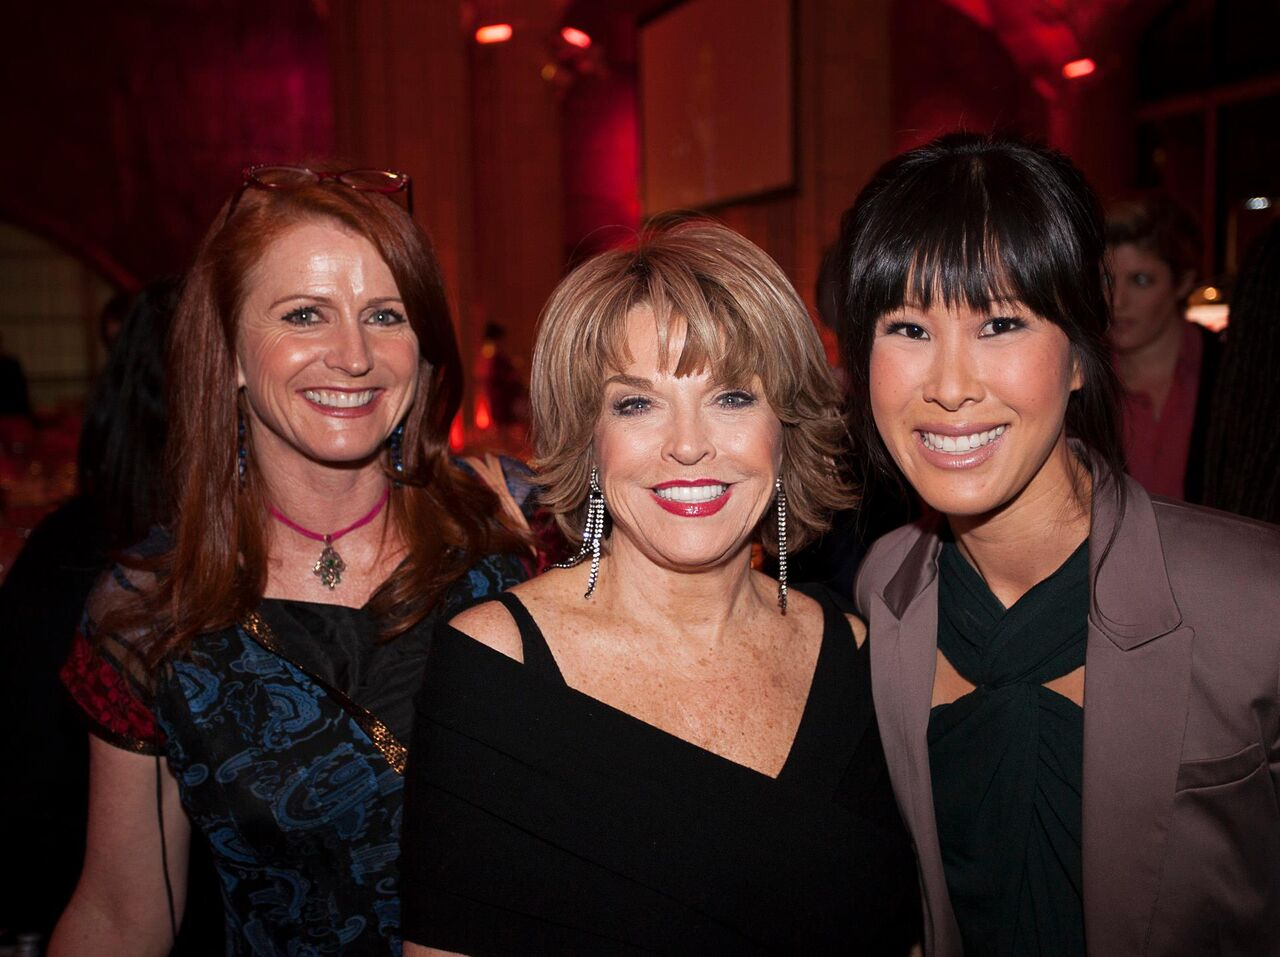 With Jodie Evans and Laura Ling